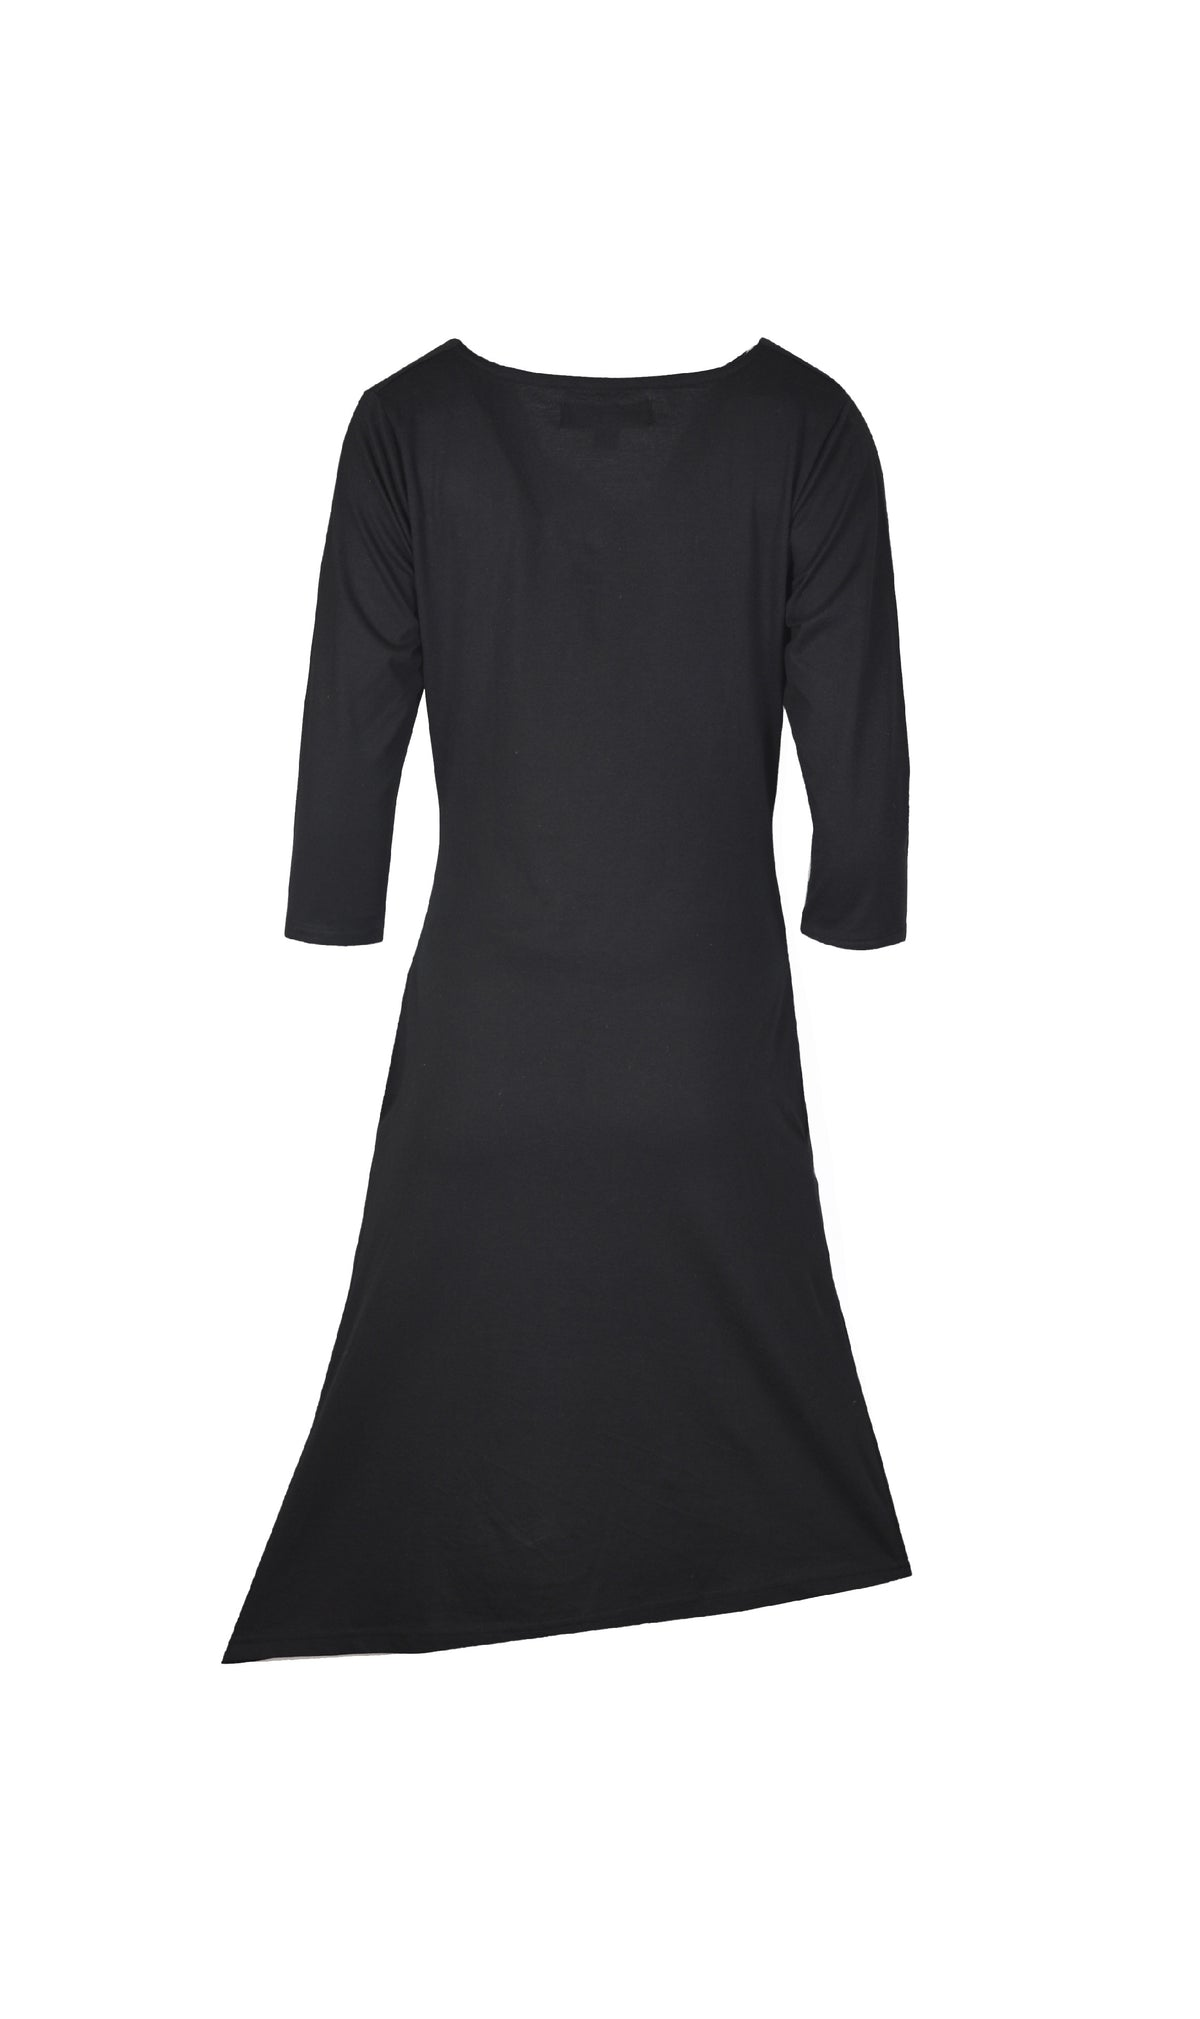 Ladies quarter sleeve dress with front embroidery. - Craze Trade Limited